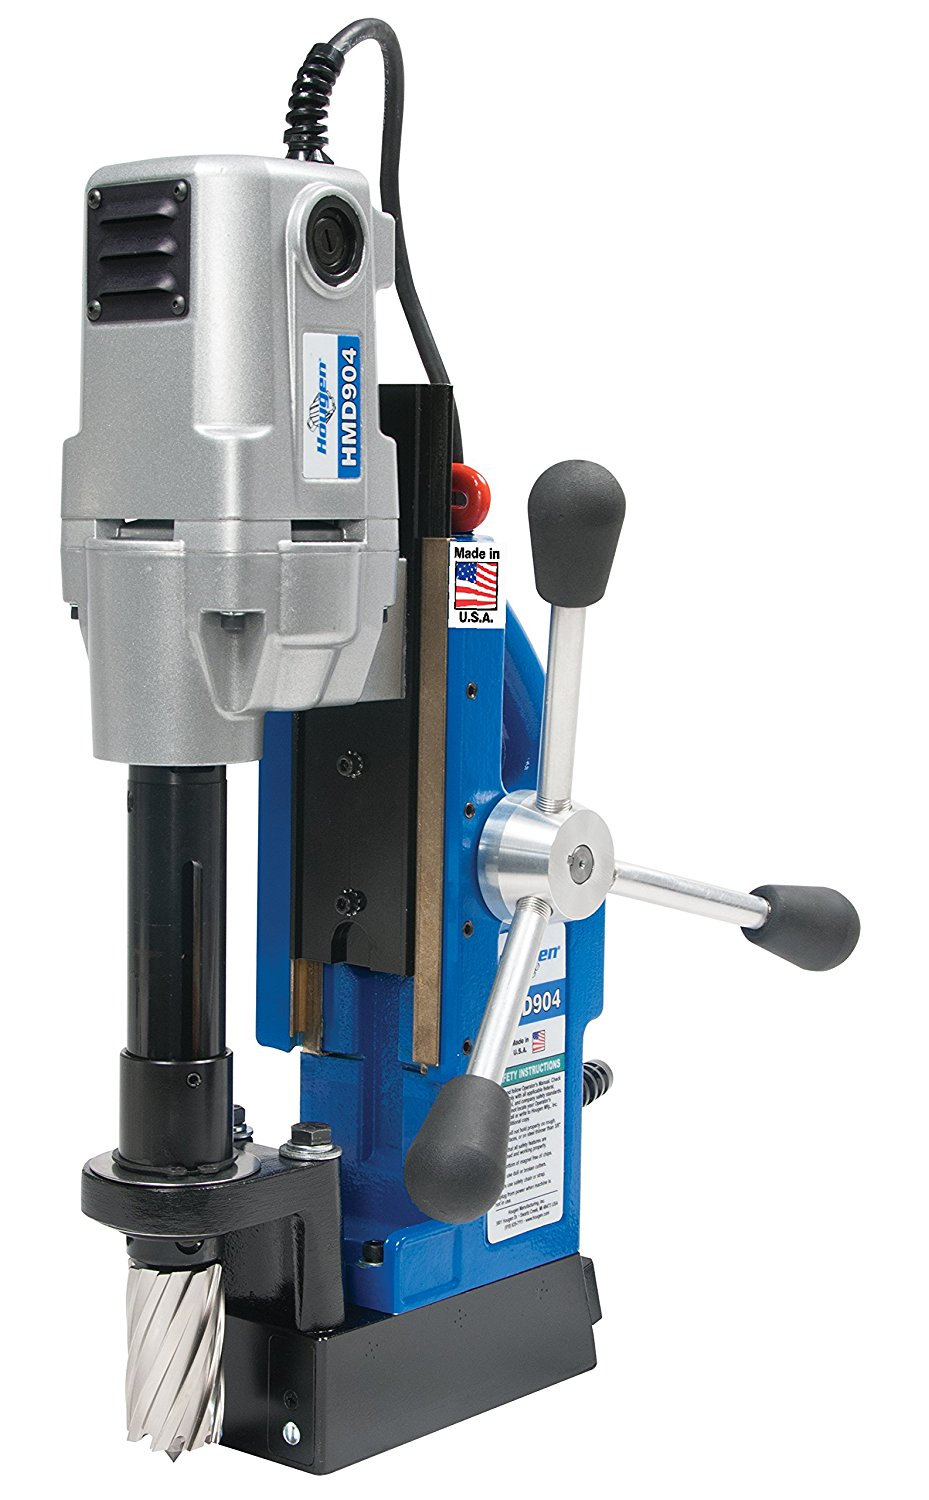 Magnetic Drill Press, Hougen, 0904101 by Hougen